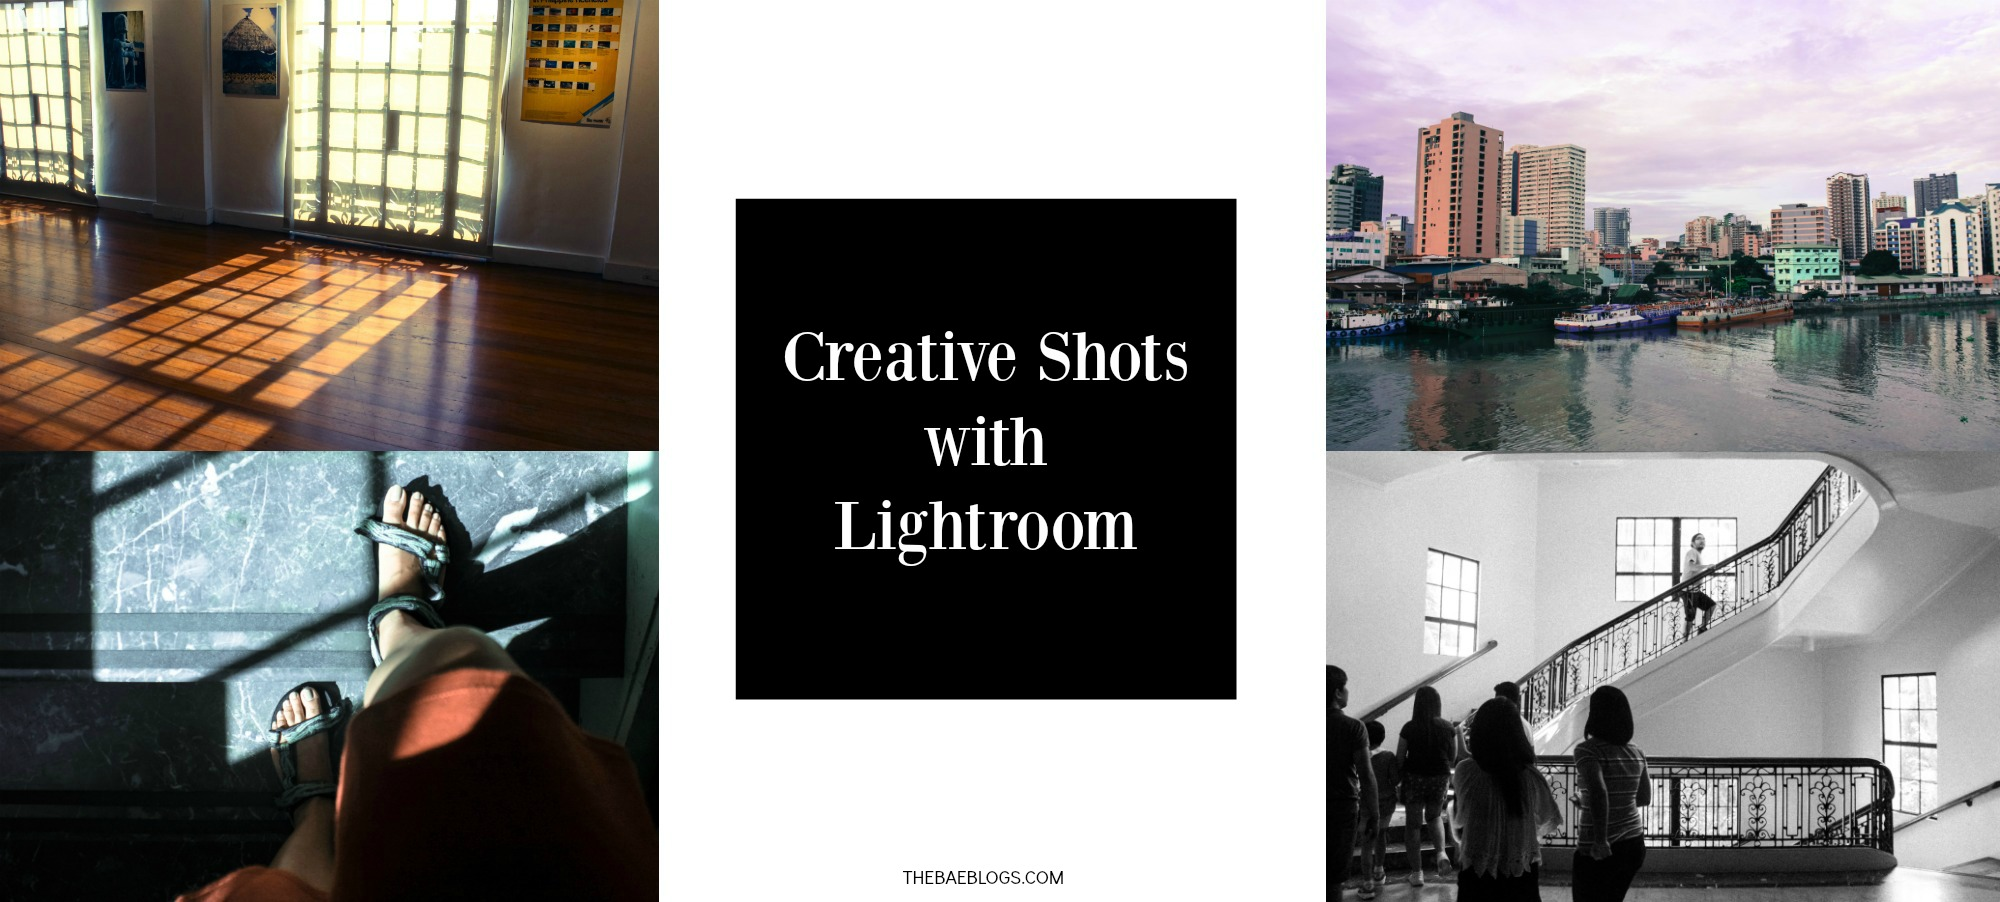 Creative Shots with Lightroom